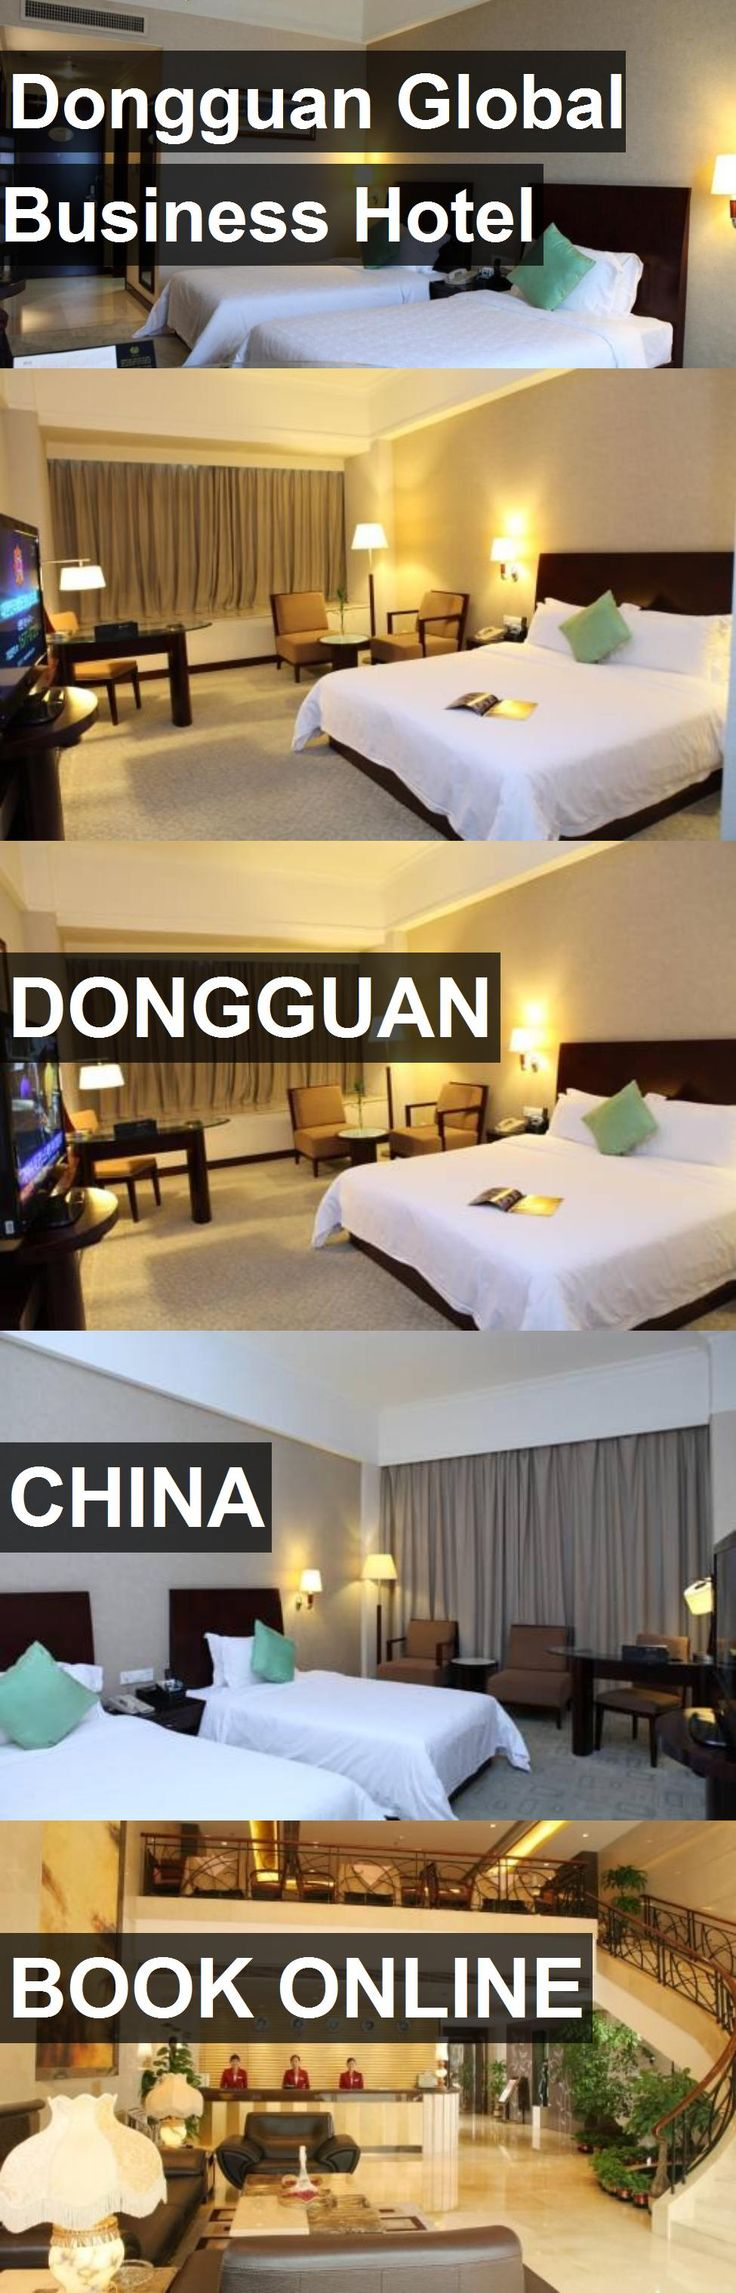 Hotel Dongguan Global Business Hotel in Dongguan, China. For more information, photos, reviews and best prices please follow the link. #China #Dongguan #DongguanGlobalBusinessHotel #hotel #travel #vacation